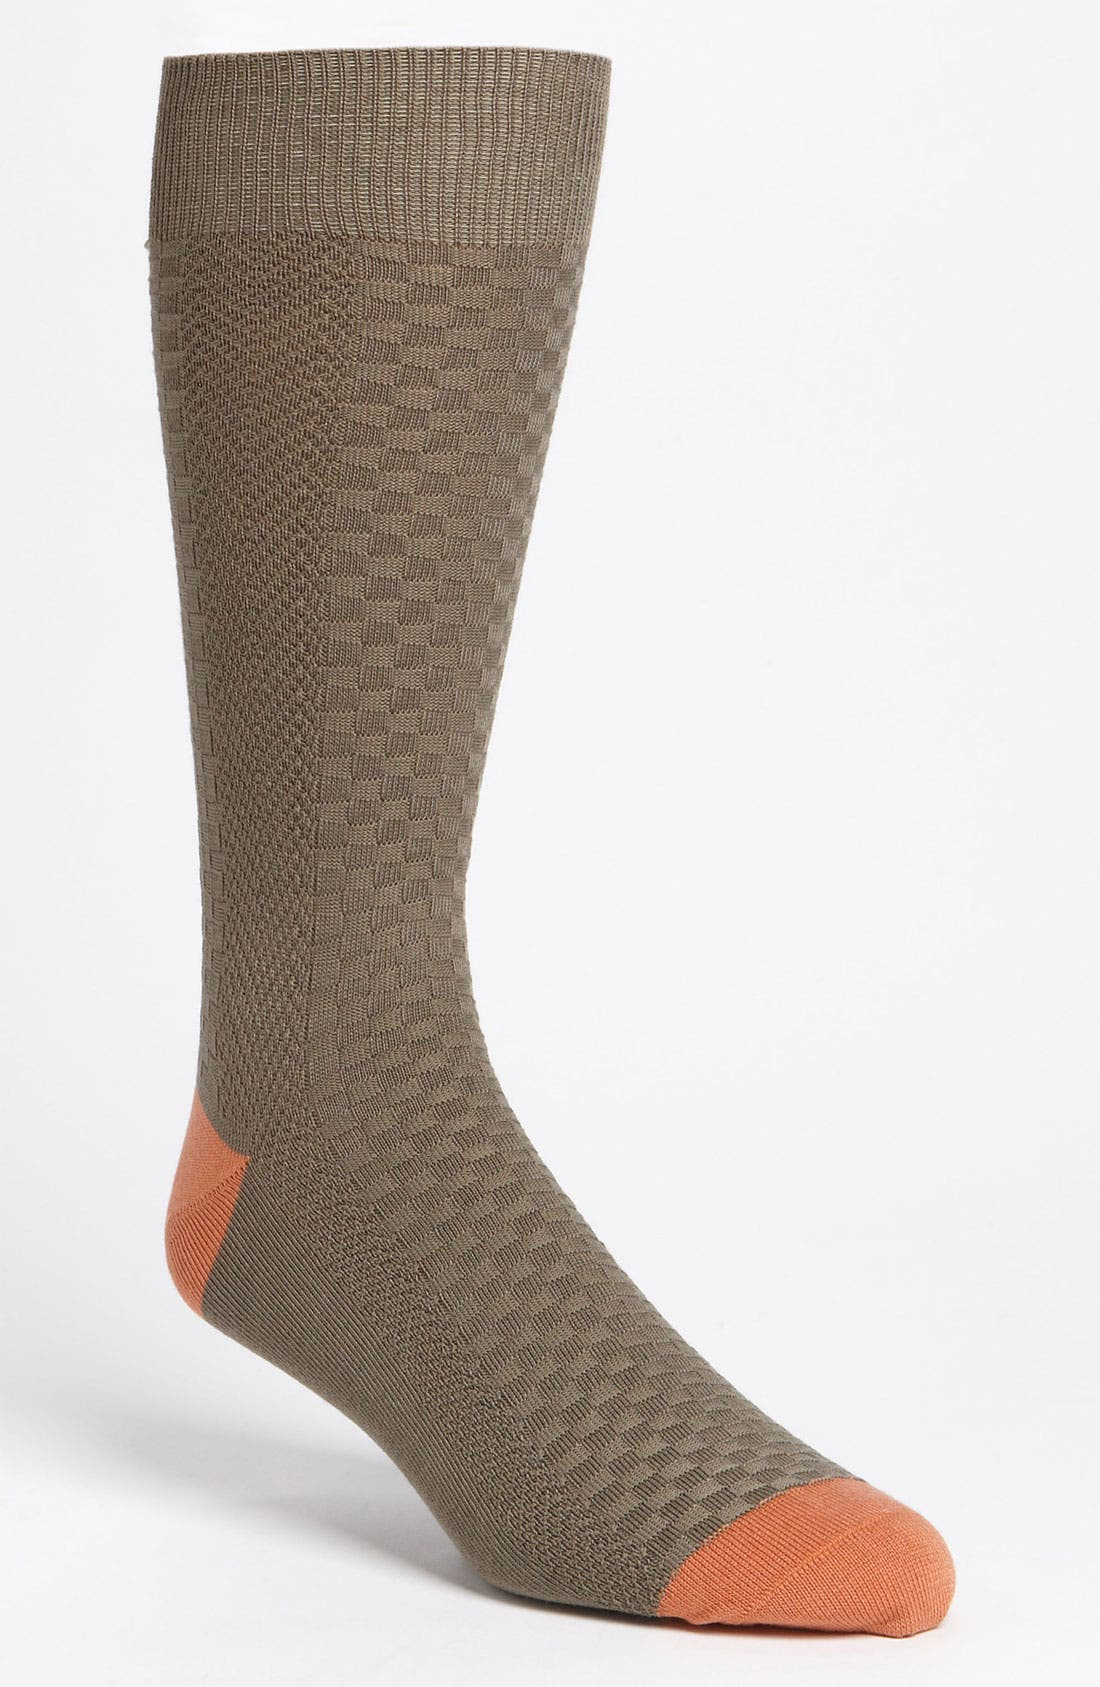 Alternate Image 1 Selected - Tommy Bahama Basket Weave Socks